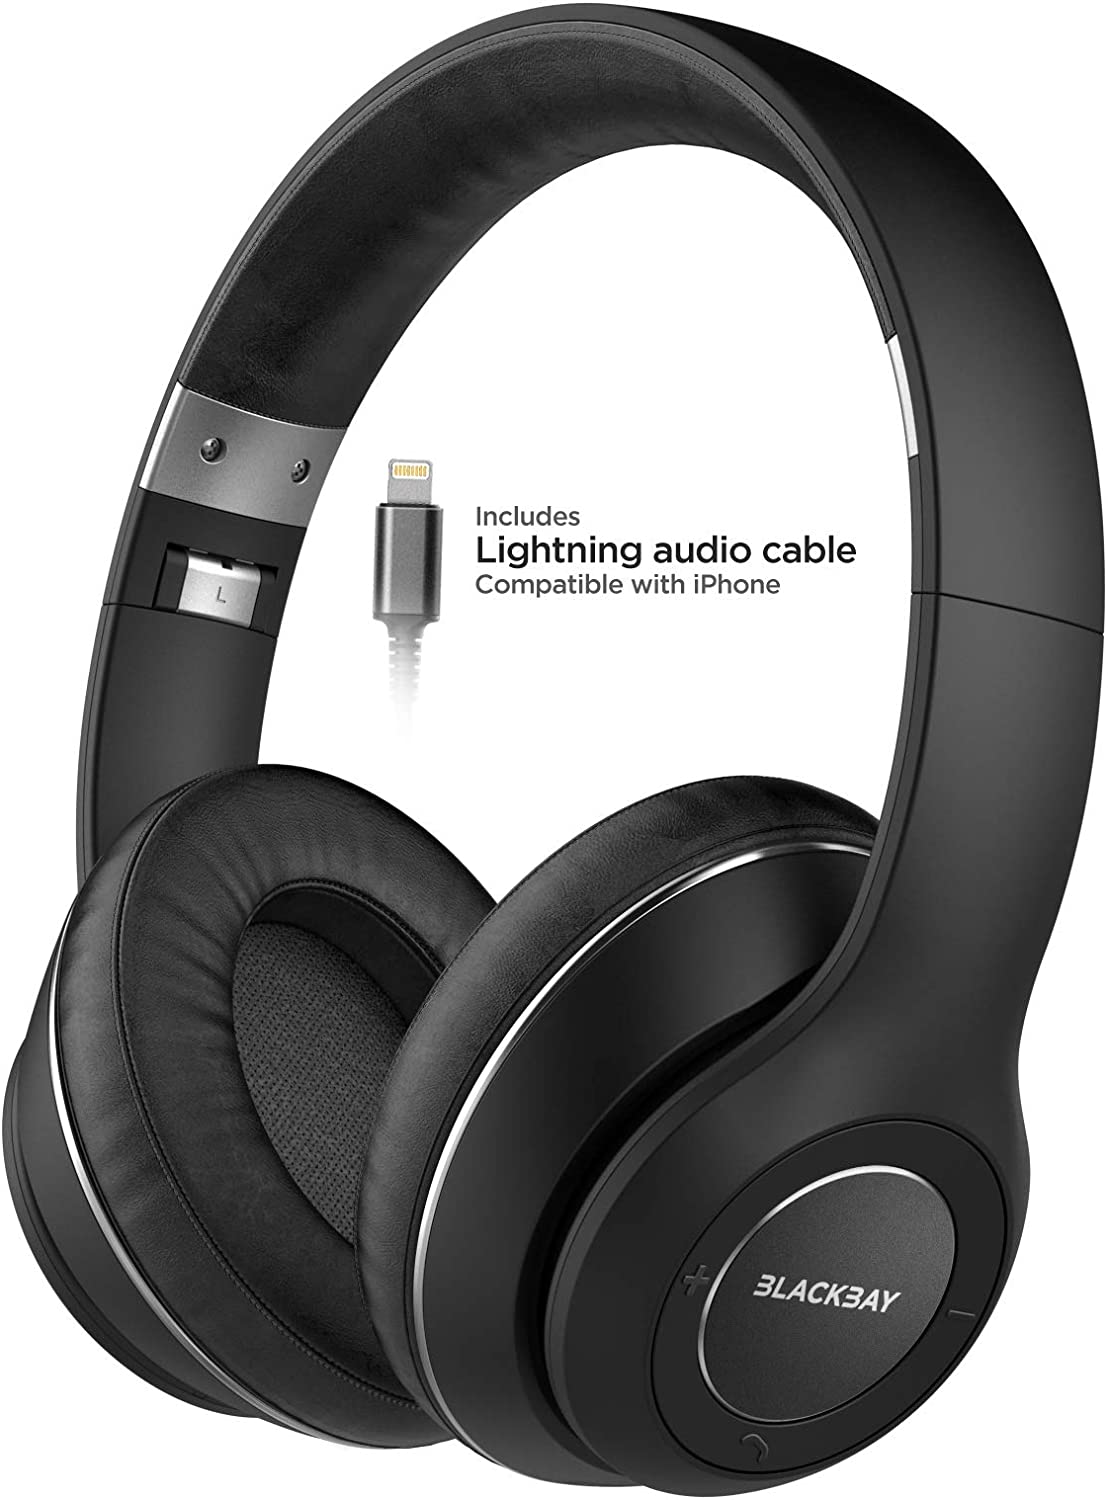 Amazon Com Thore Bluetooth Headphones W Lightning Connector For Iphone Mfi Certified By Apple Over Ear Memory Foam Wireless Earphones For Iphone 7 8 Iphone Xr Xs Max 11 Pro Black Retail Packaging